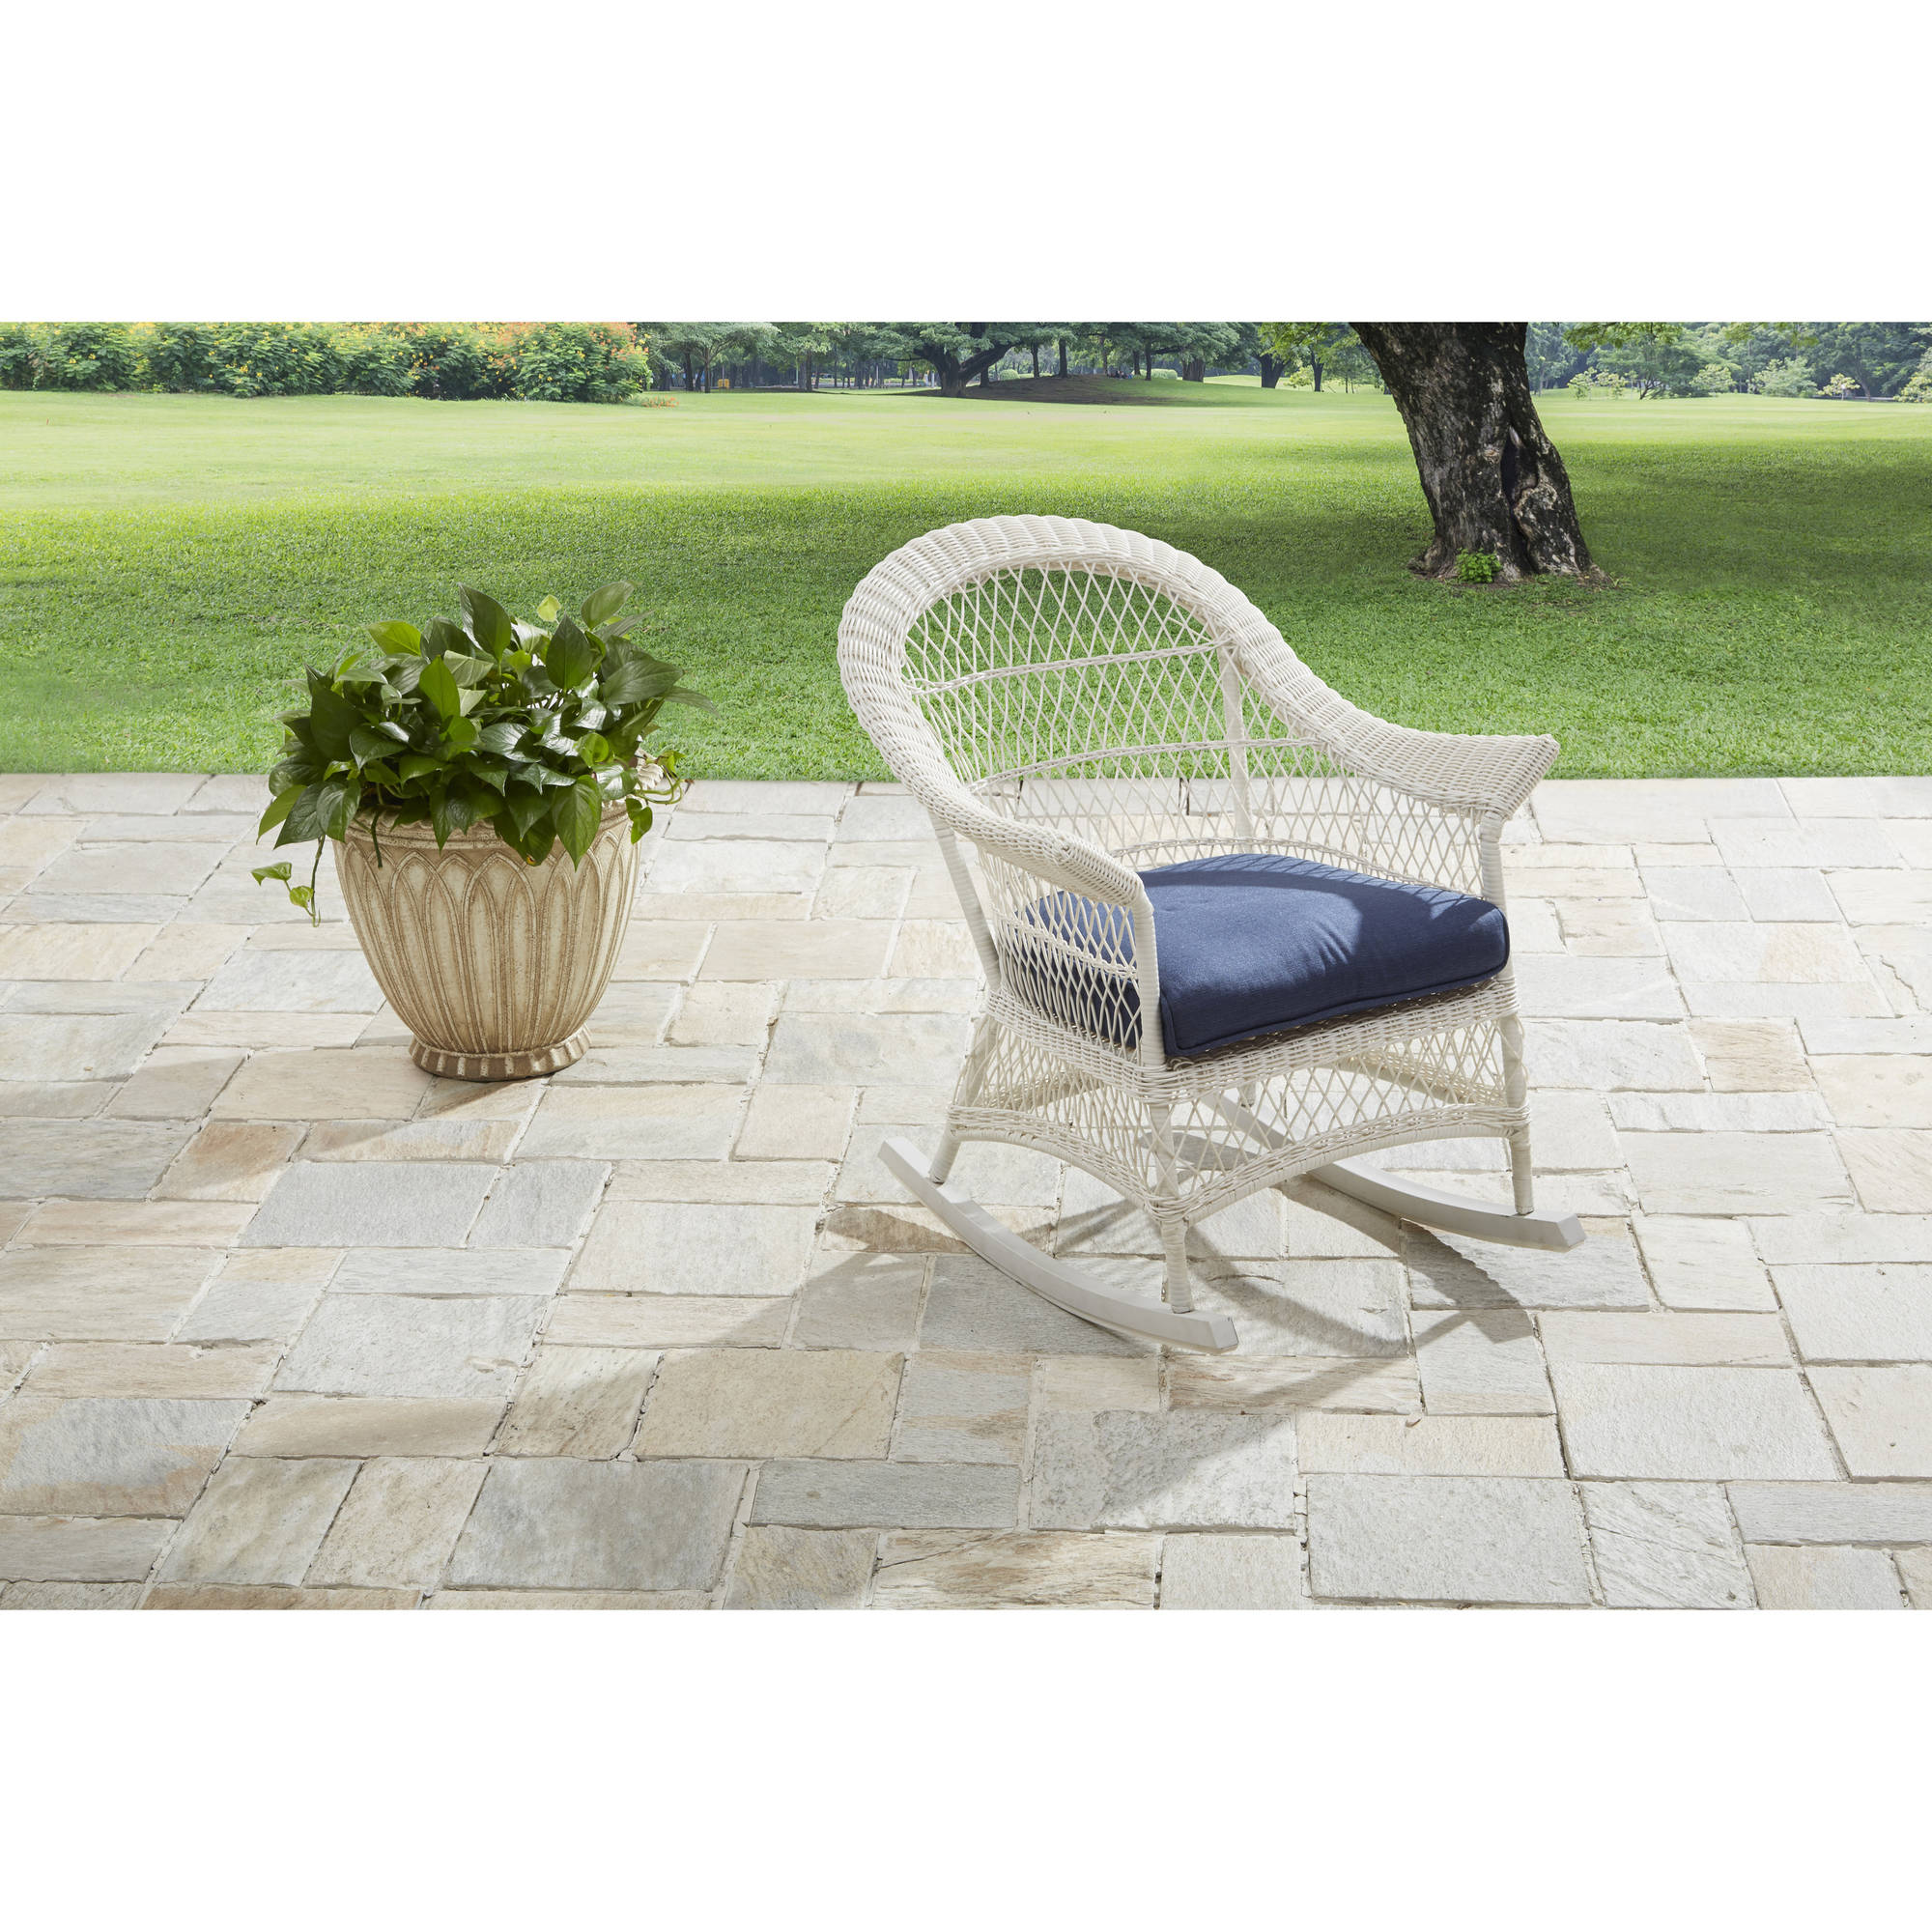 Better Homes and Gardens Porch Lane Wicker Rocking Chair